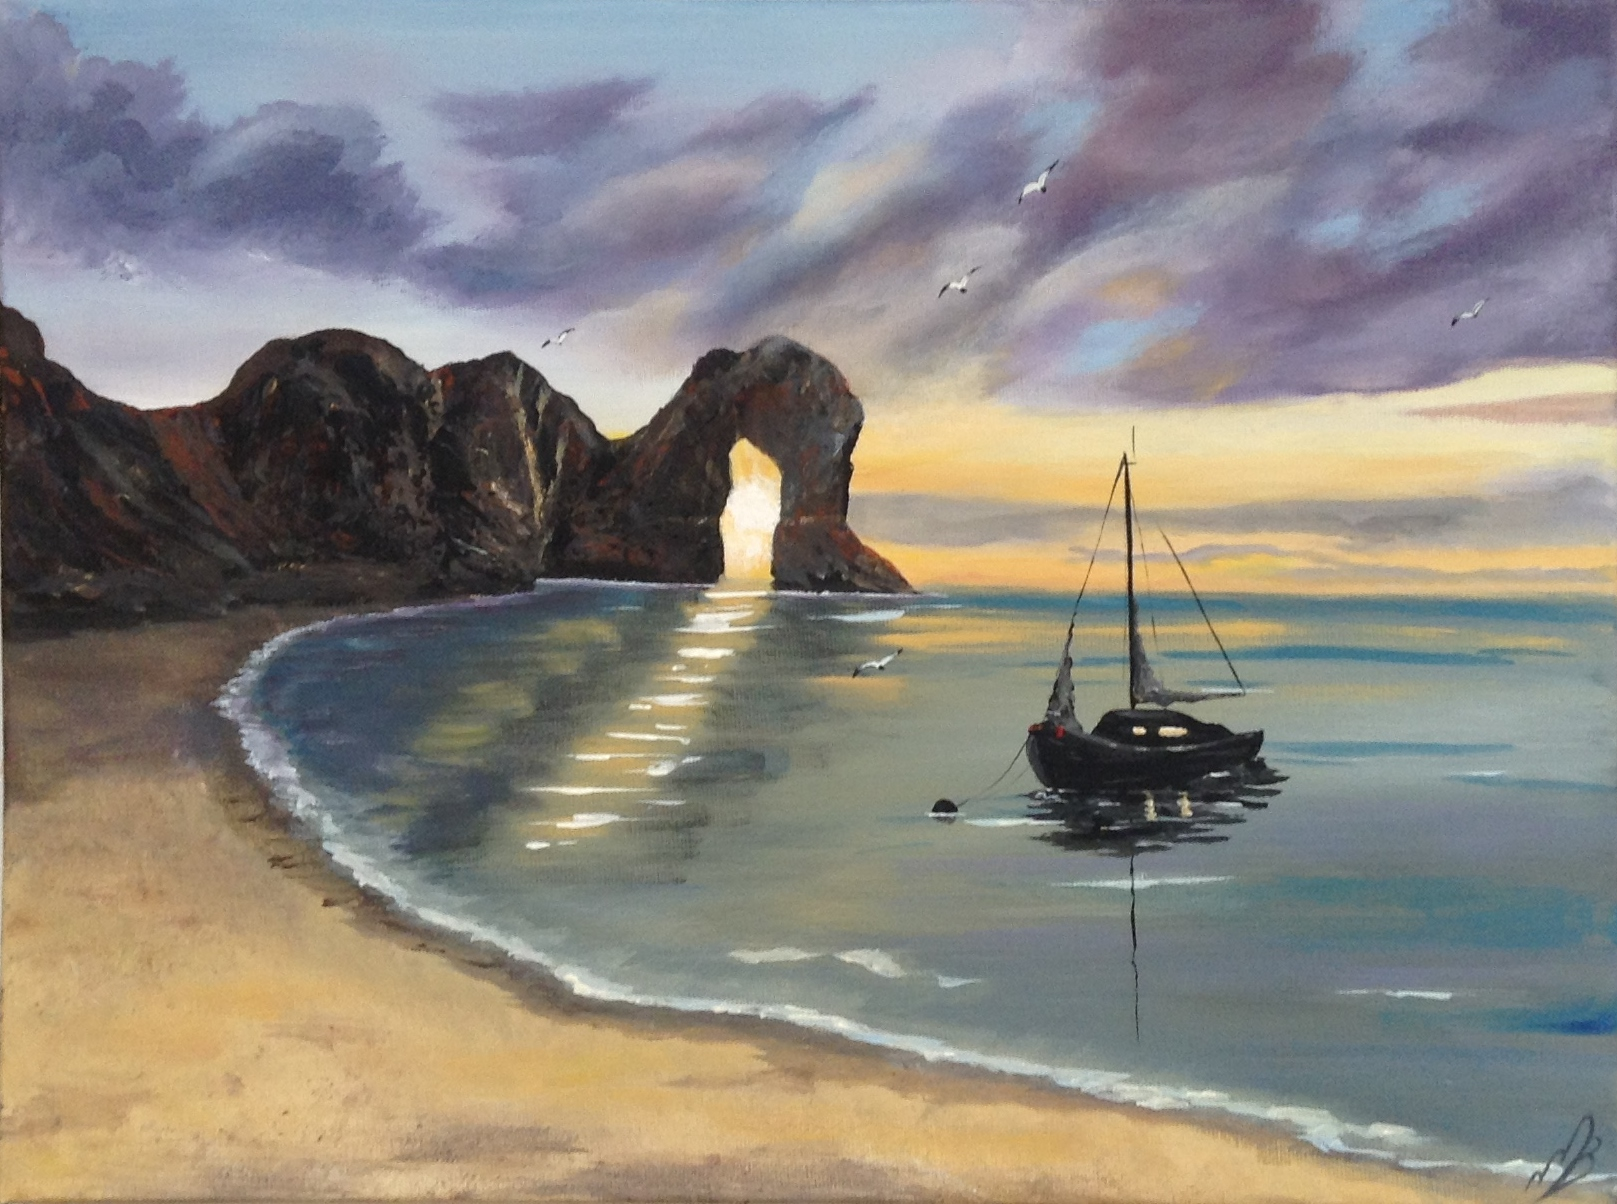 & Morning Light over Durdle Door by Marja Brown